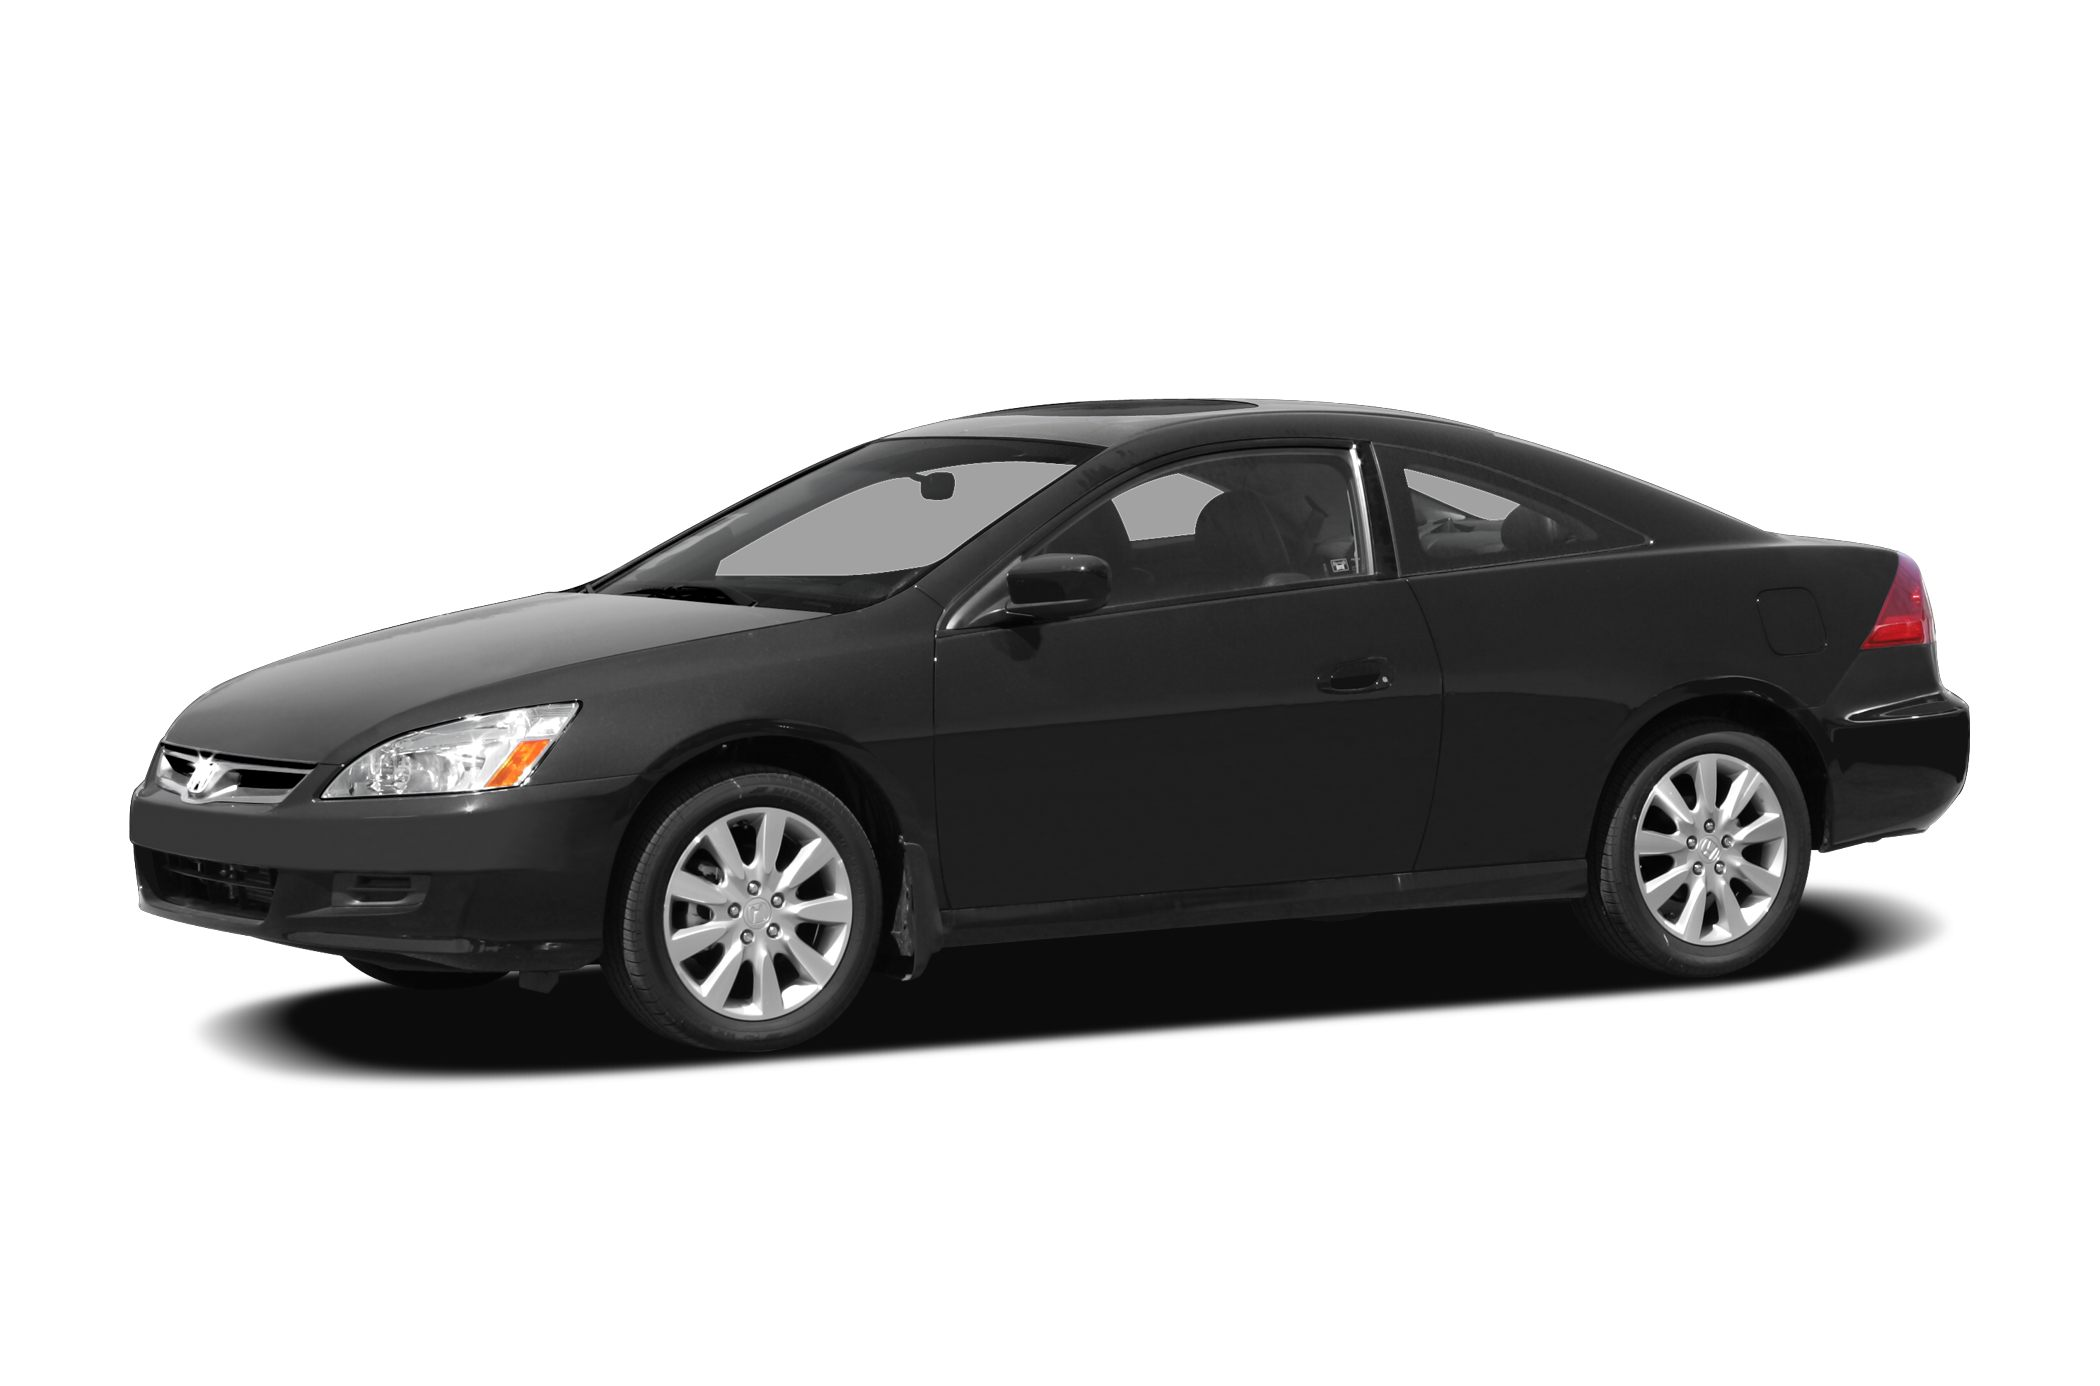 2007 Honda Accord 30 EX Cool Blue Metallic exterior and Black interior EX-L trim EPA 29 MPG Hwy